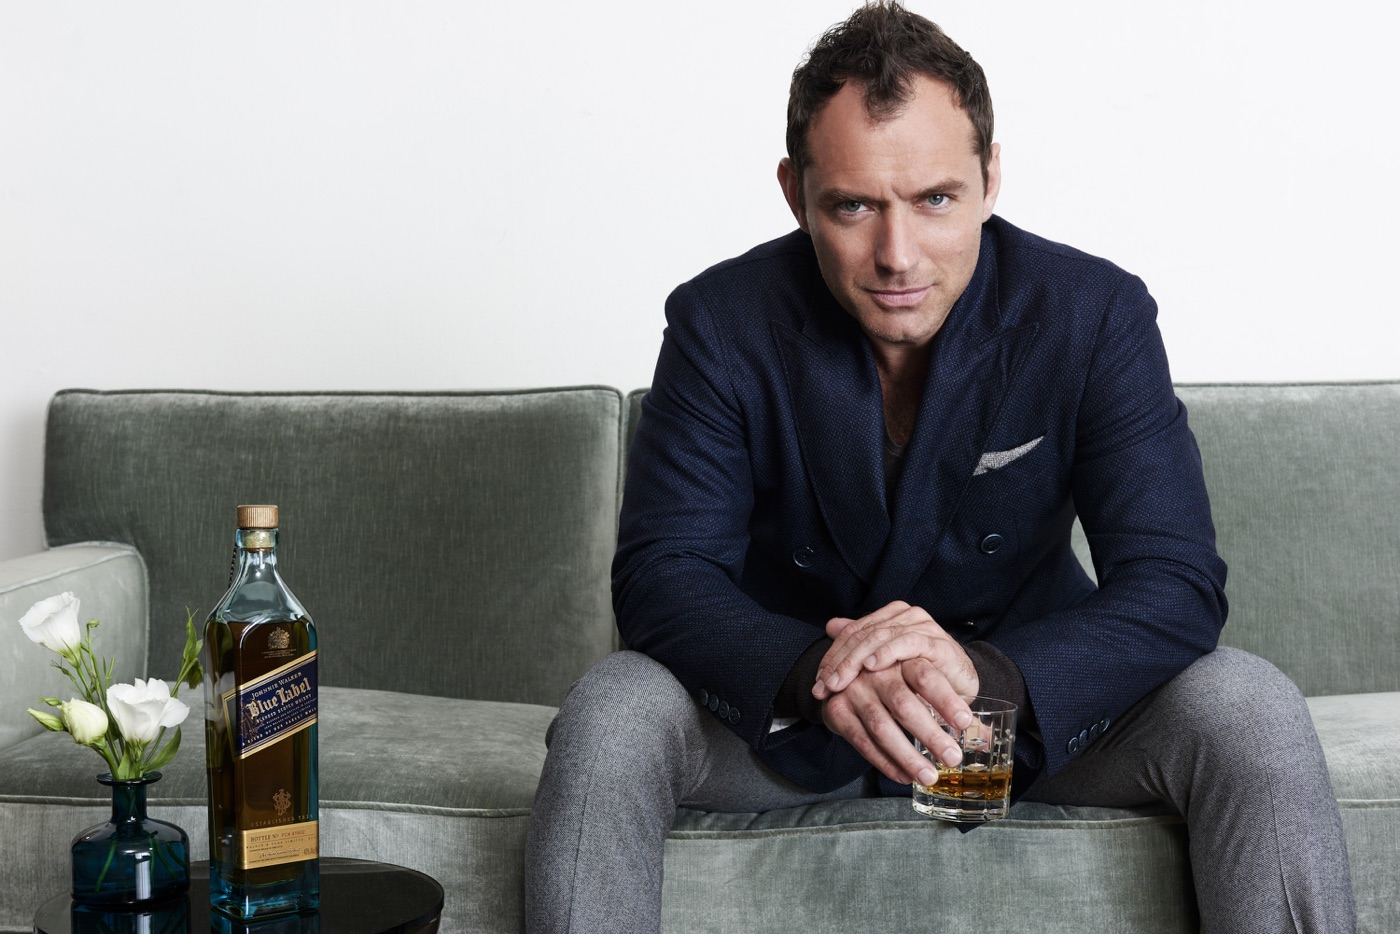 Jude Law celebrating World Whisky Day with Johnnie Walker Blue Label (Photo Credit: Frederic Auerbach)